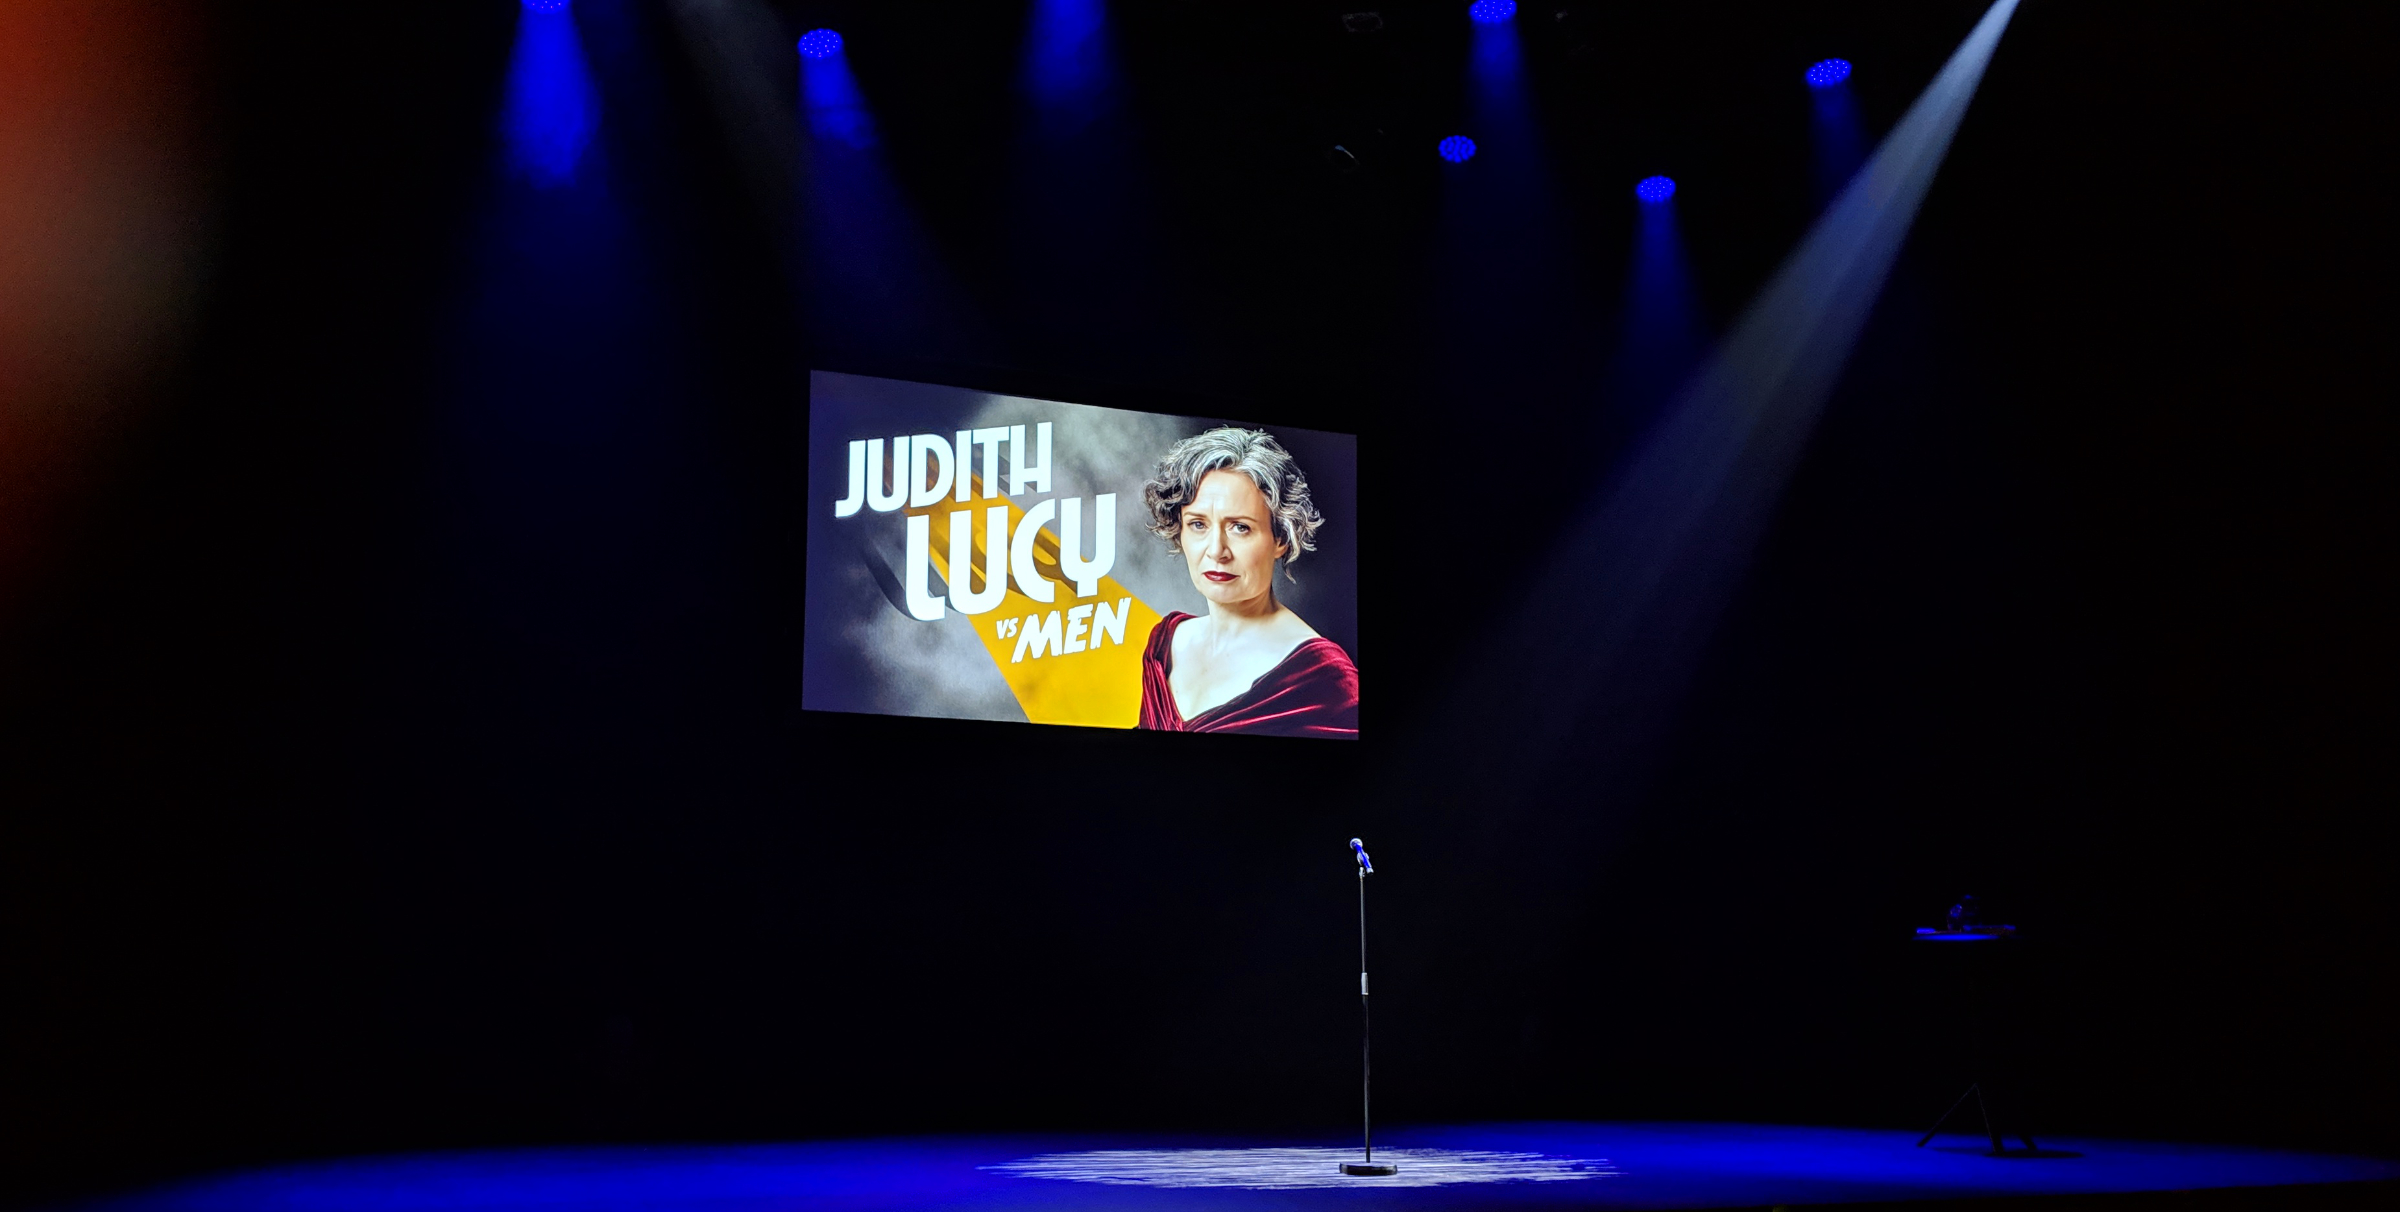 Waiting for Judith Lucy to come and perform her fantastic 'Judith Lucy vs Men' show.